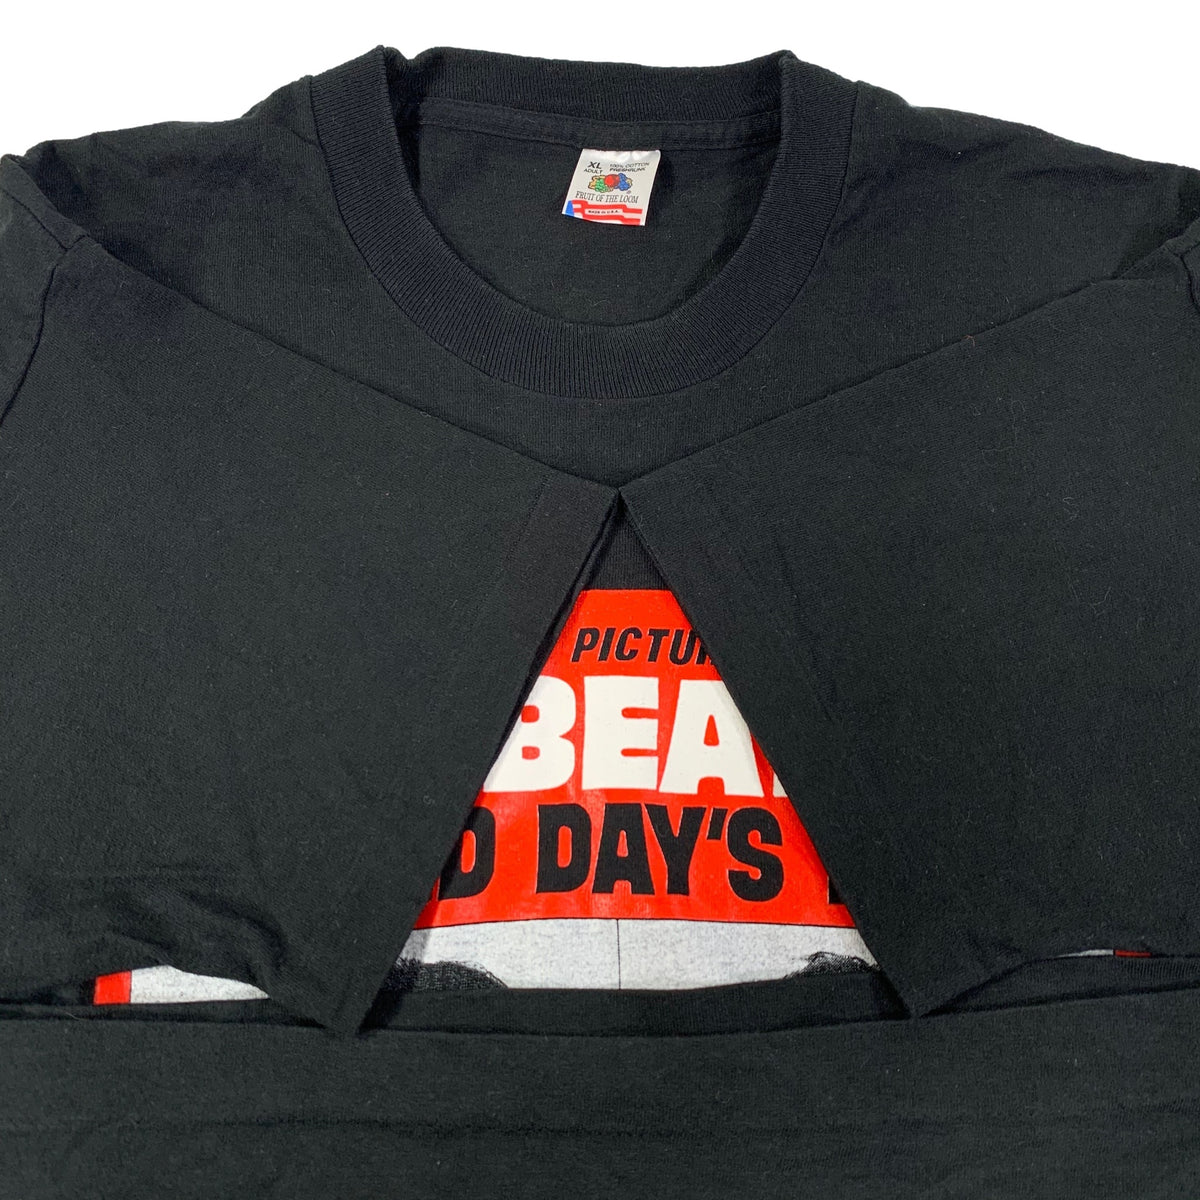 "Vintage The Beatles ""A Hard Day's Night"" T-Shirt"